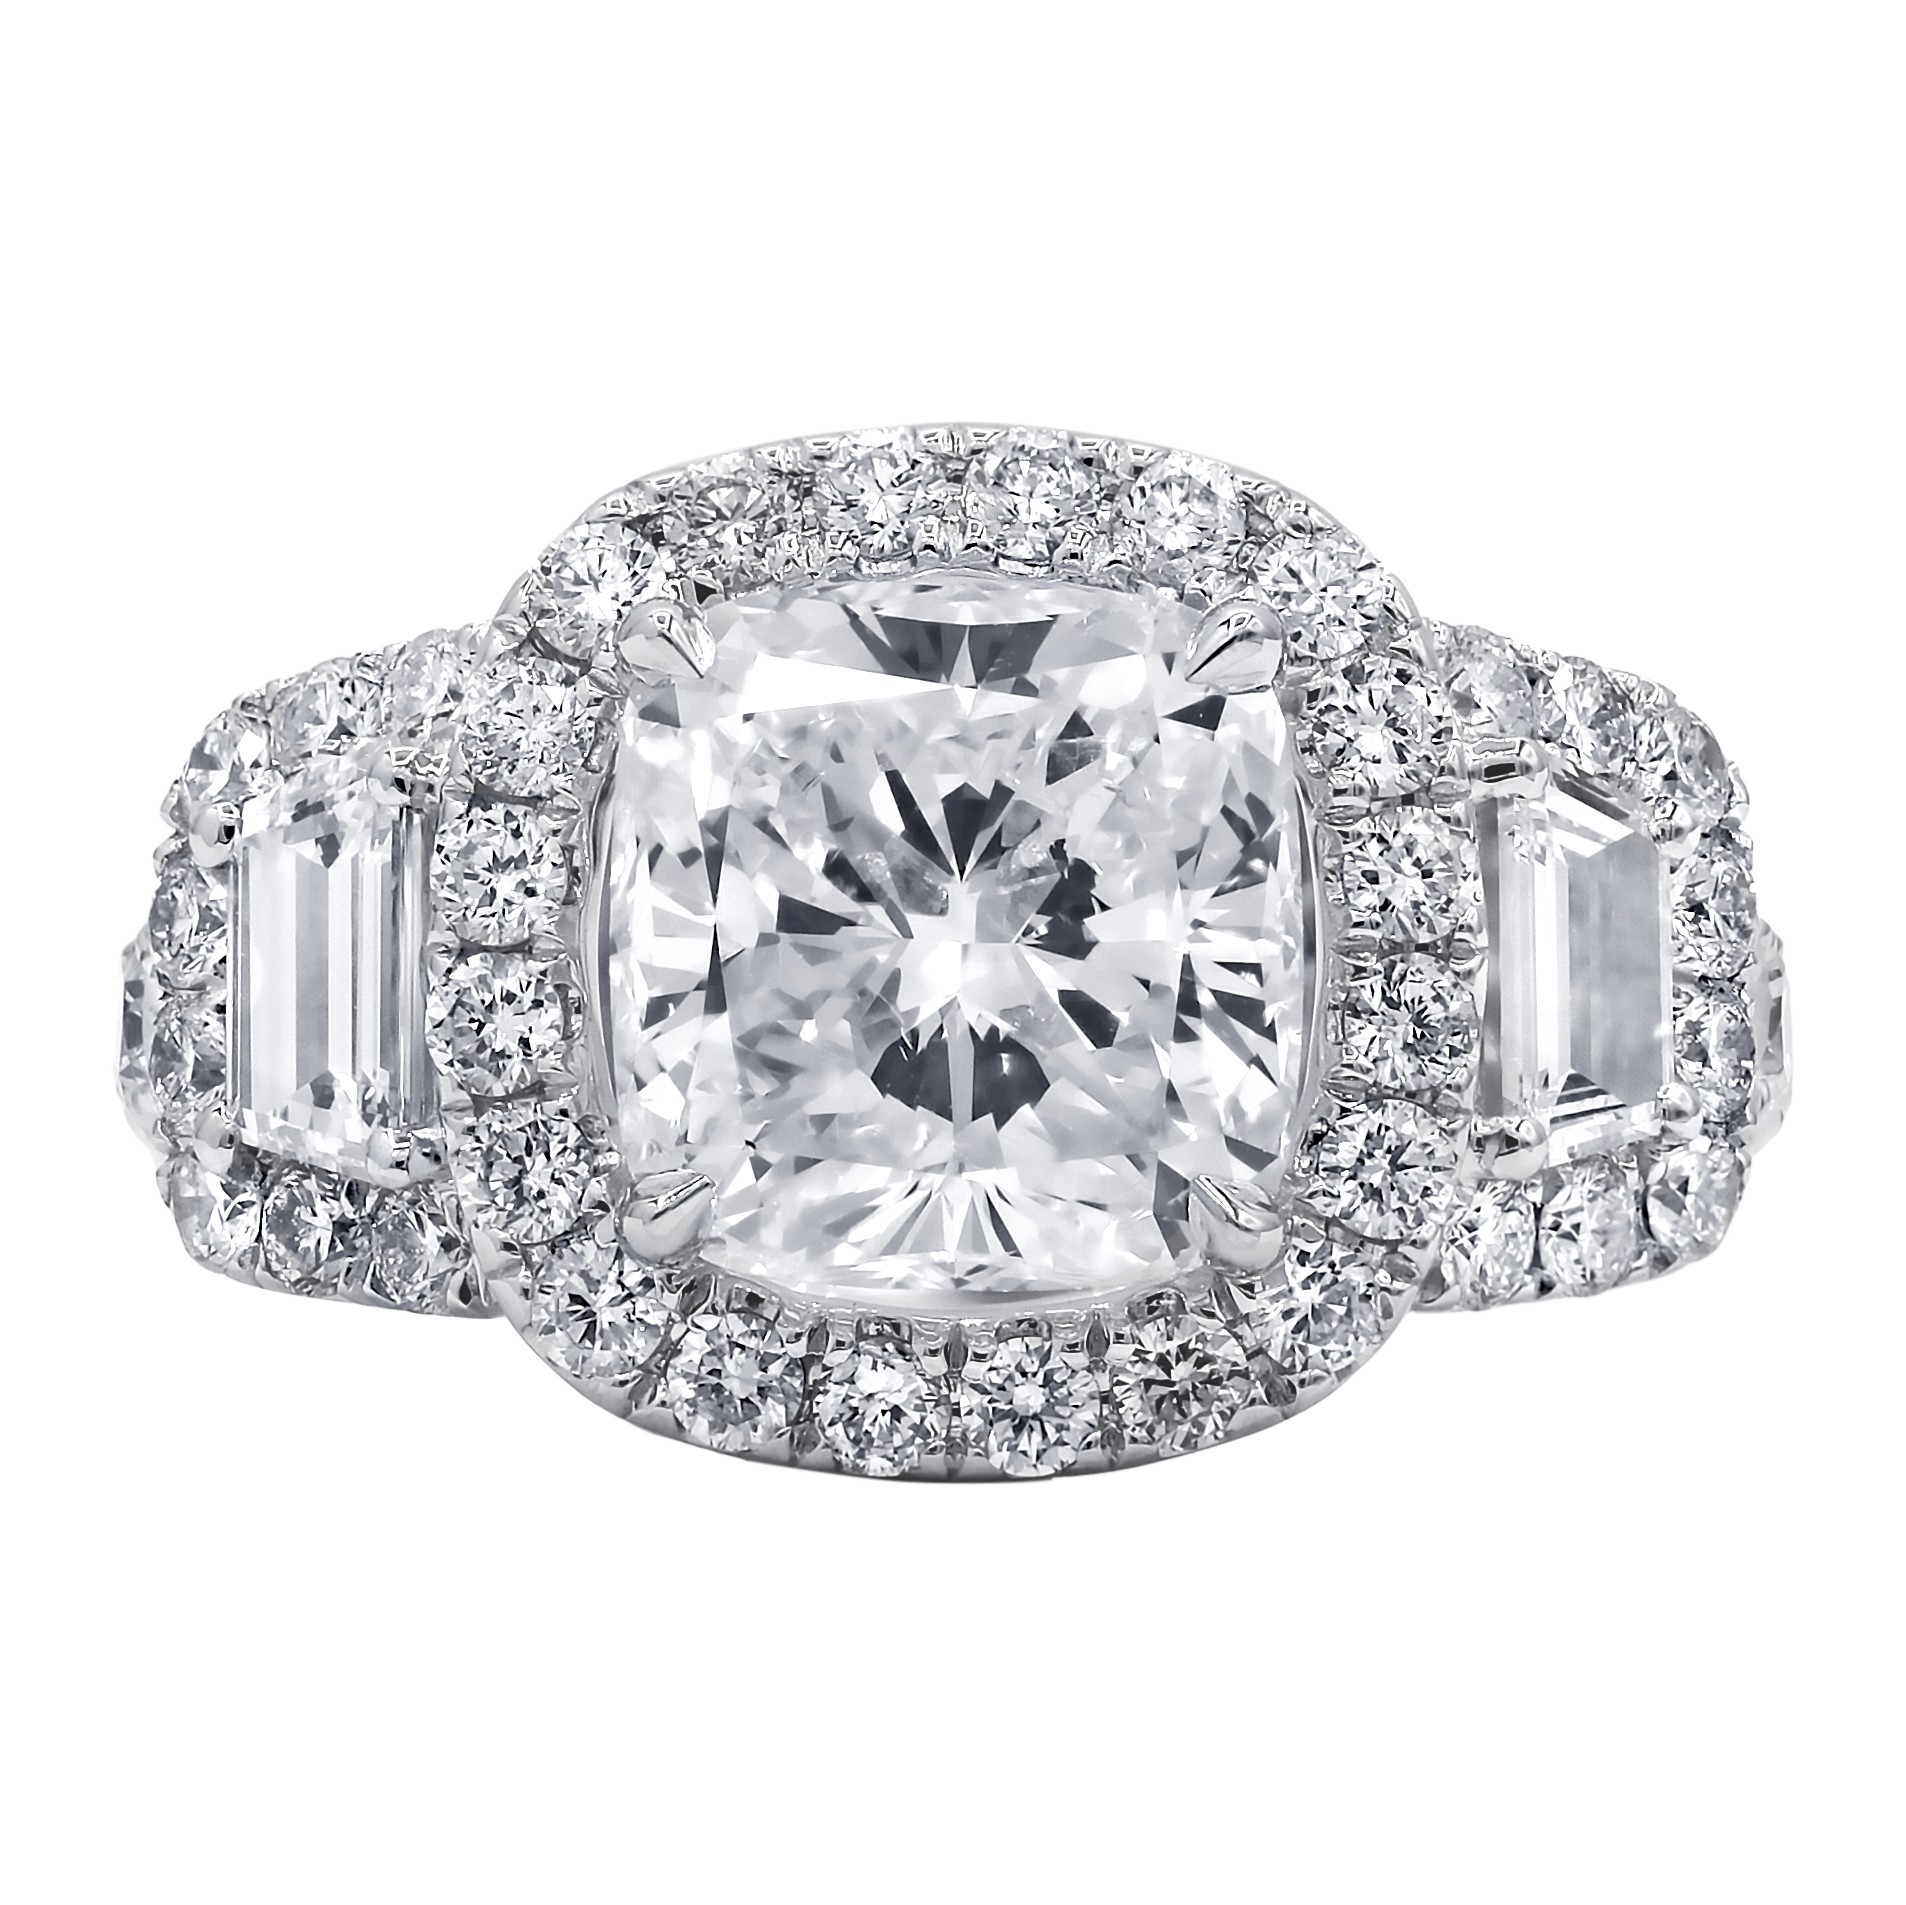 Incredibly beautiful 4.72 TCW diamond engagement ring,GIA CERTIFIED.